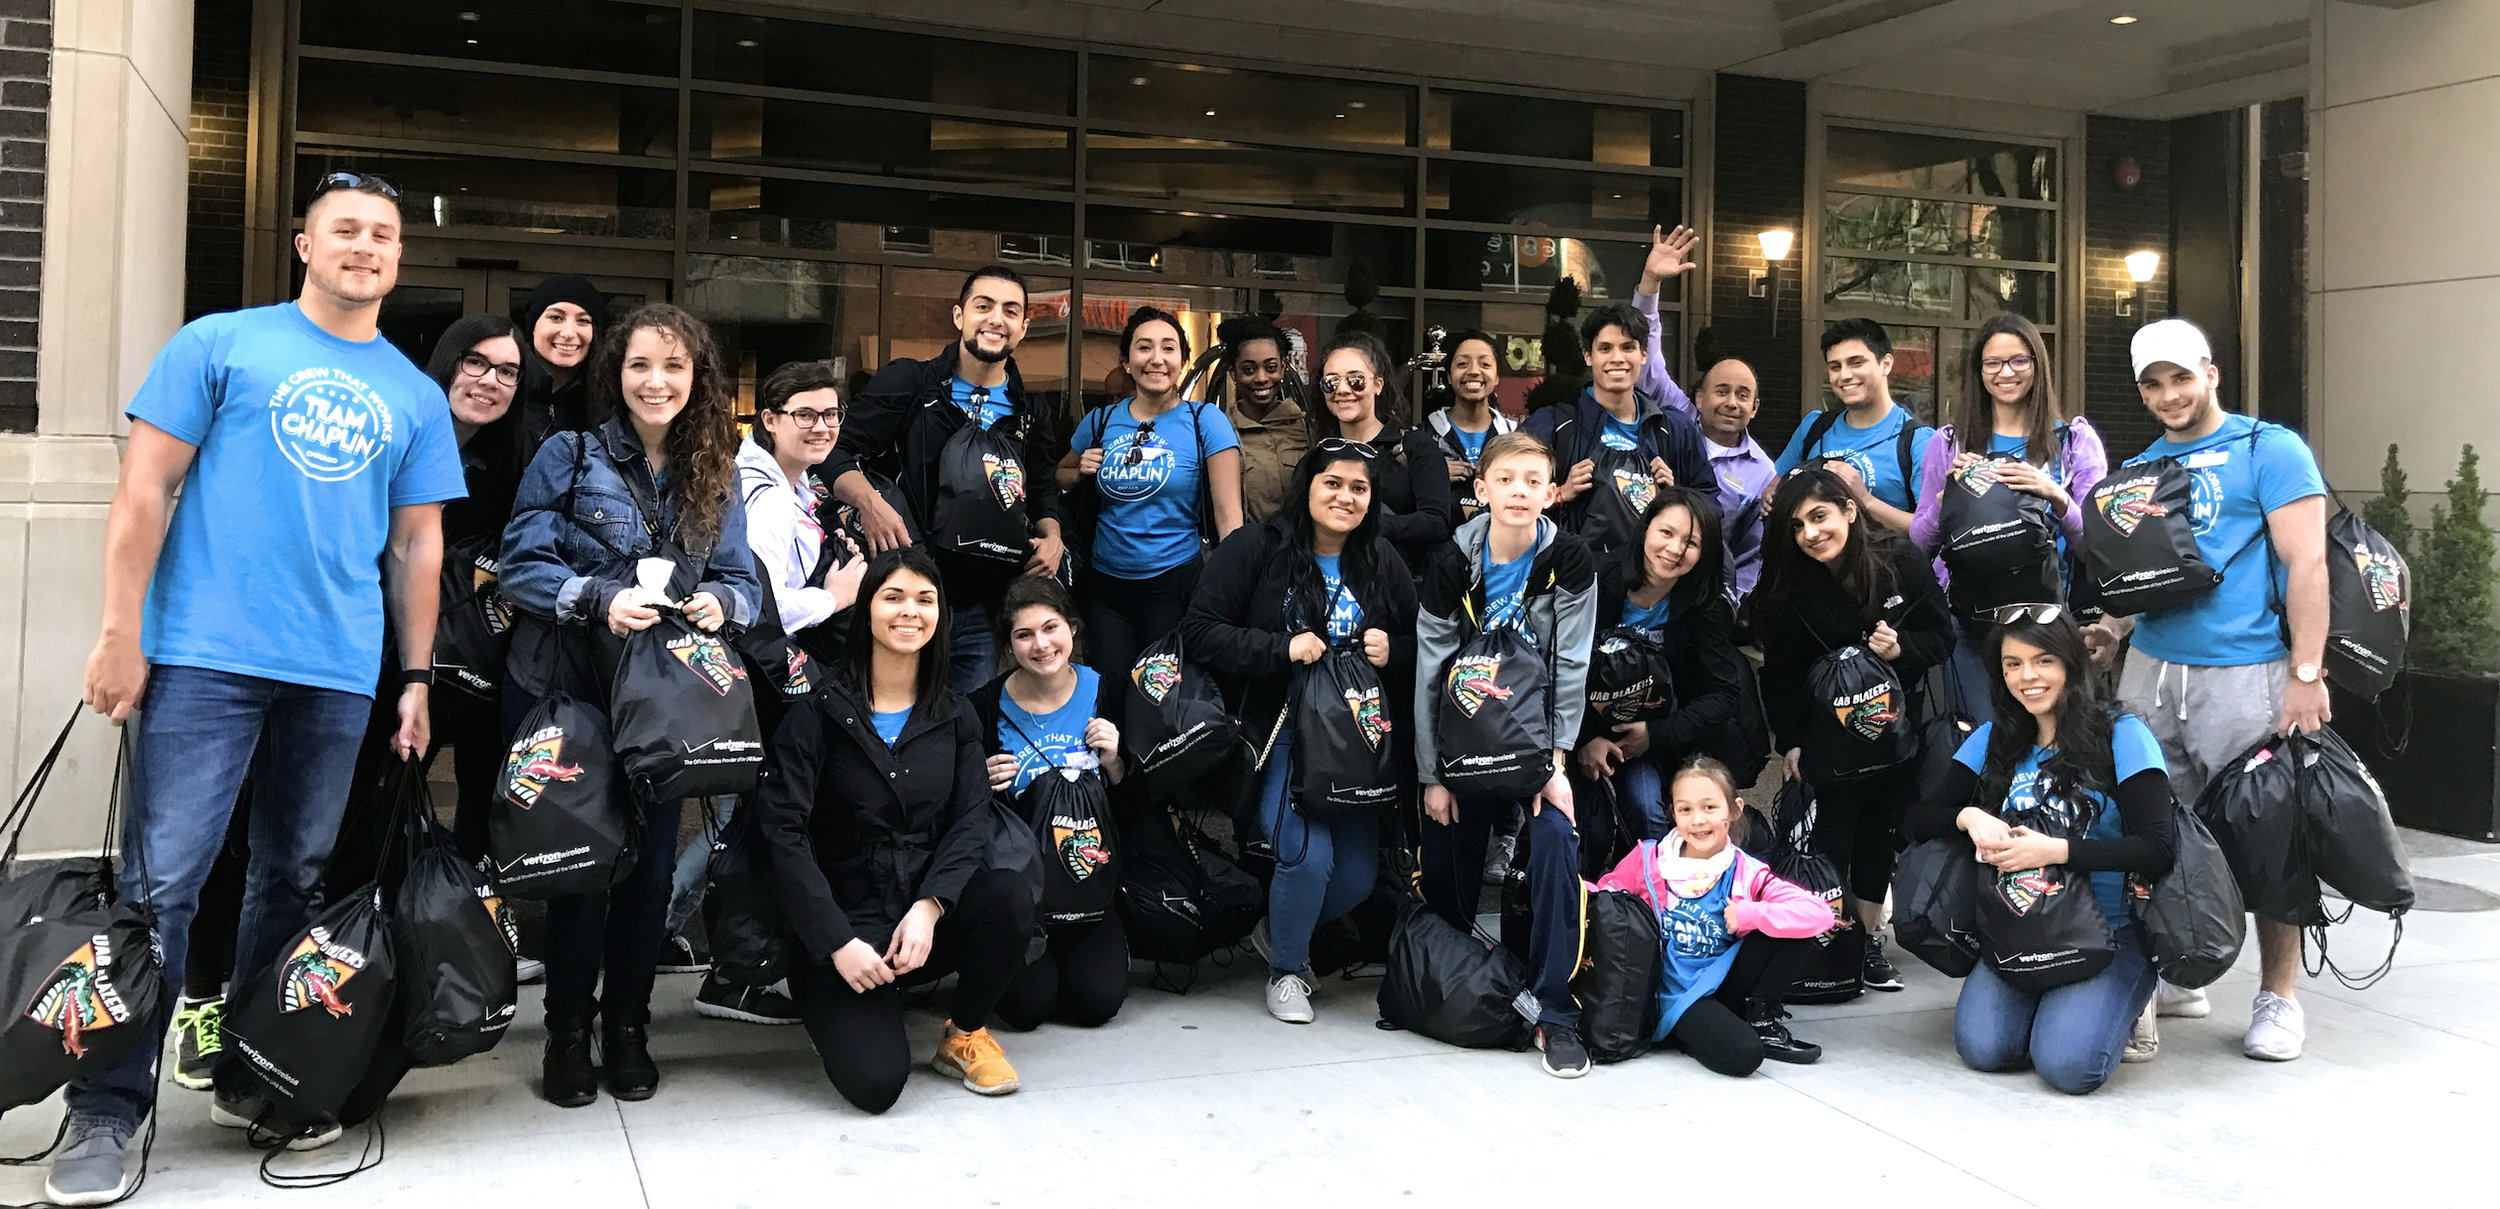 Sunday, April 23, 2017: Team Chaplin set out from Fairfield Inn & Suites by the Magnificent Mile to deliver food and care packages to the homeless.